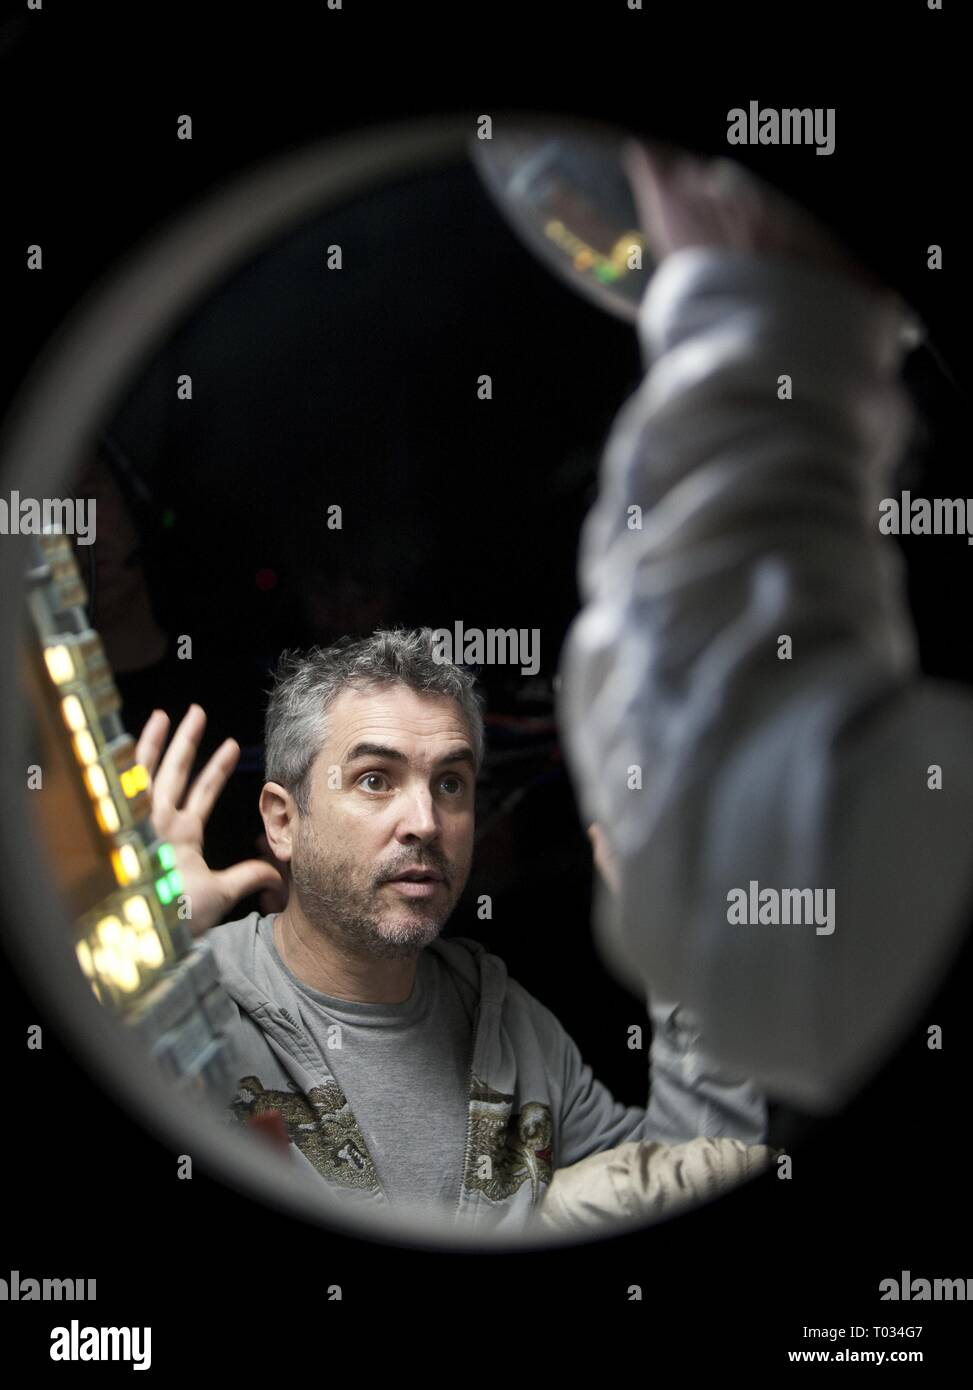 Alfonso Cuaron Gravity 2013 Stock Photo Alamy